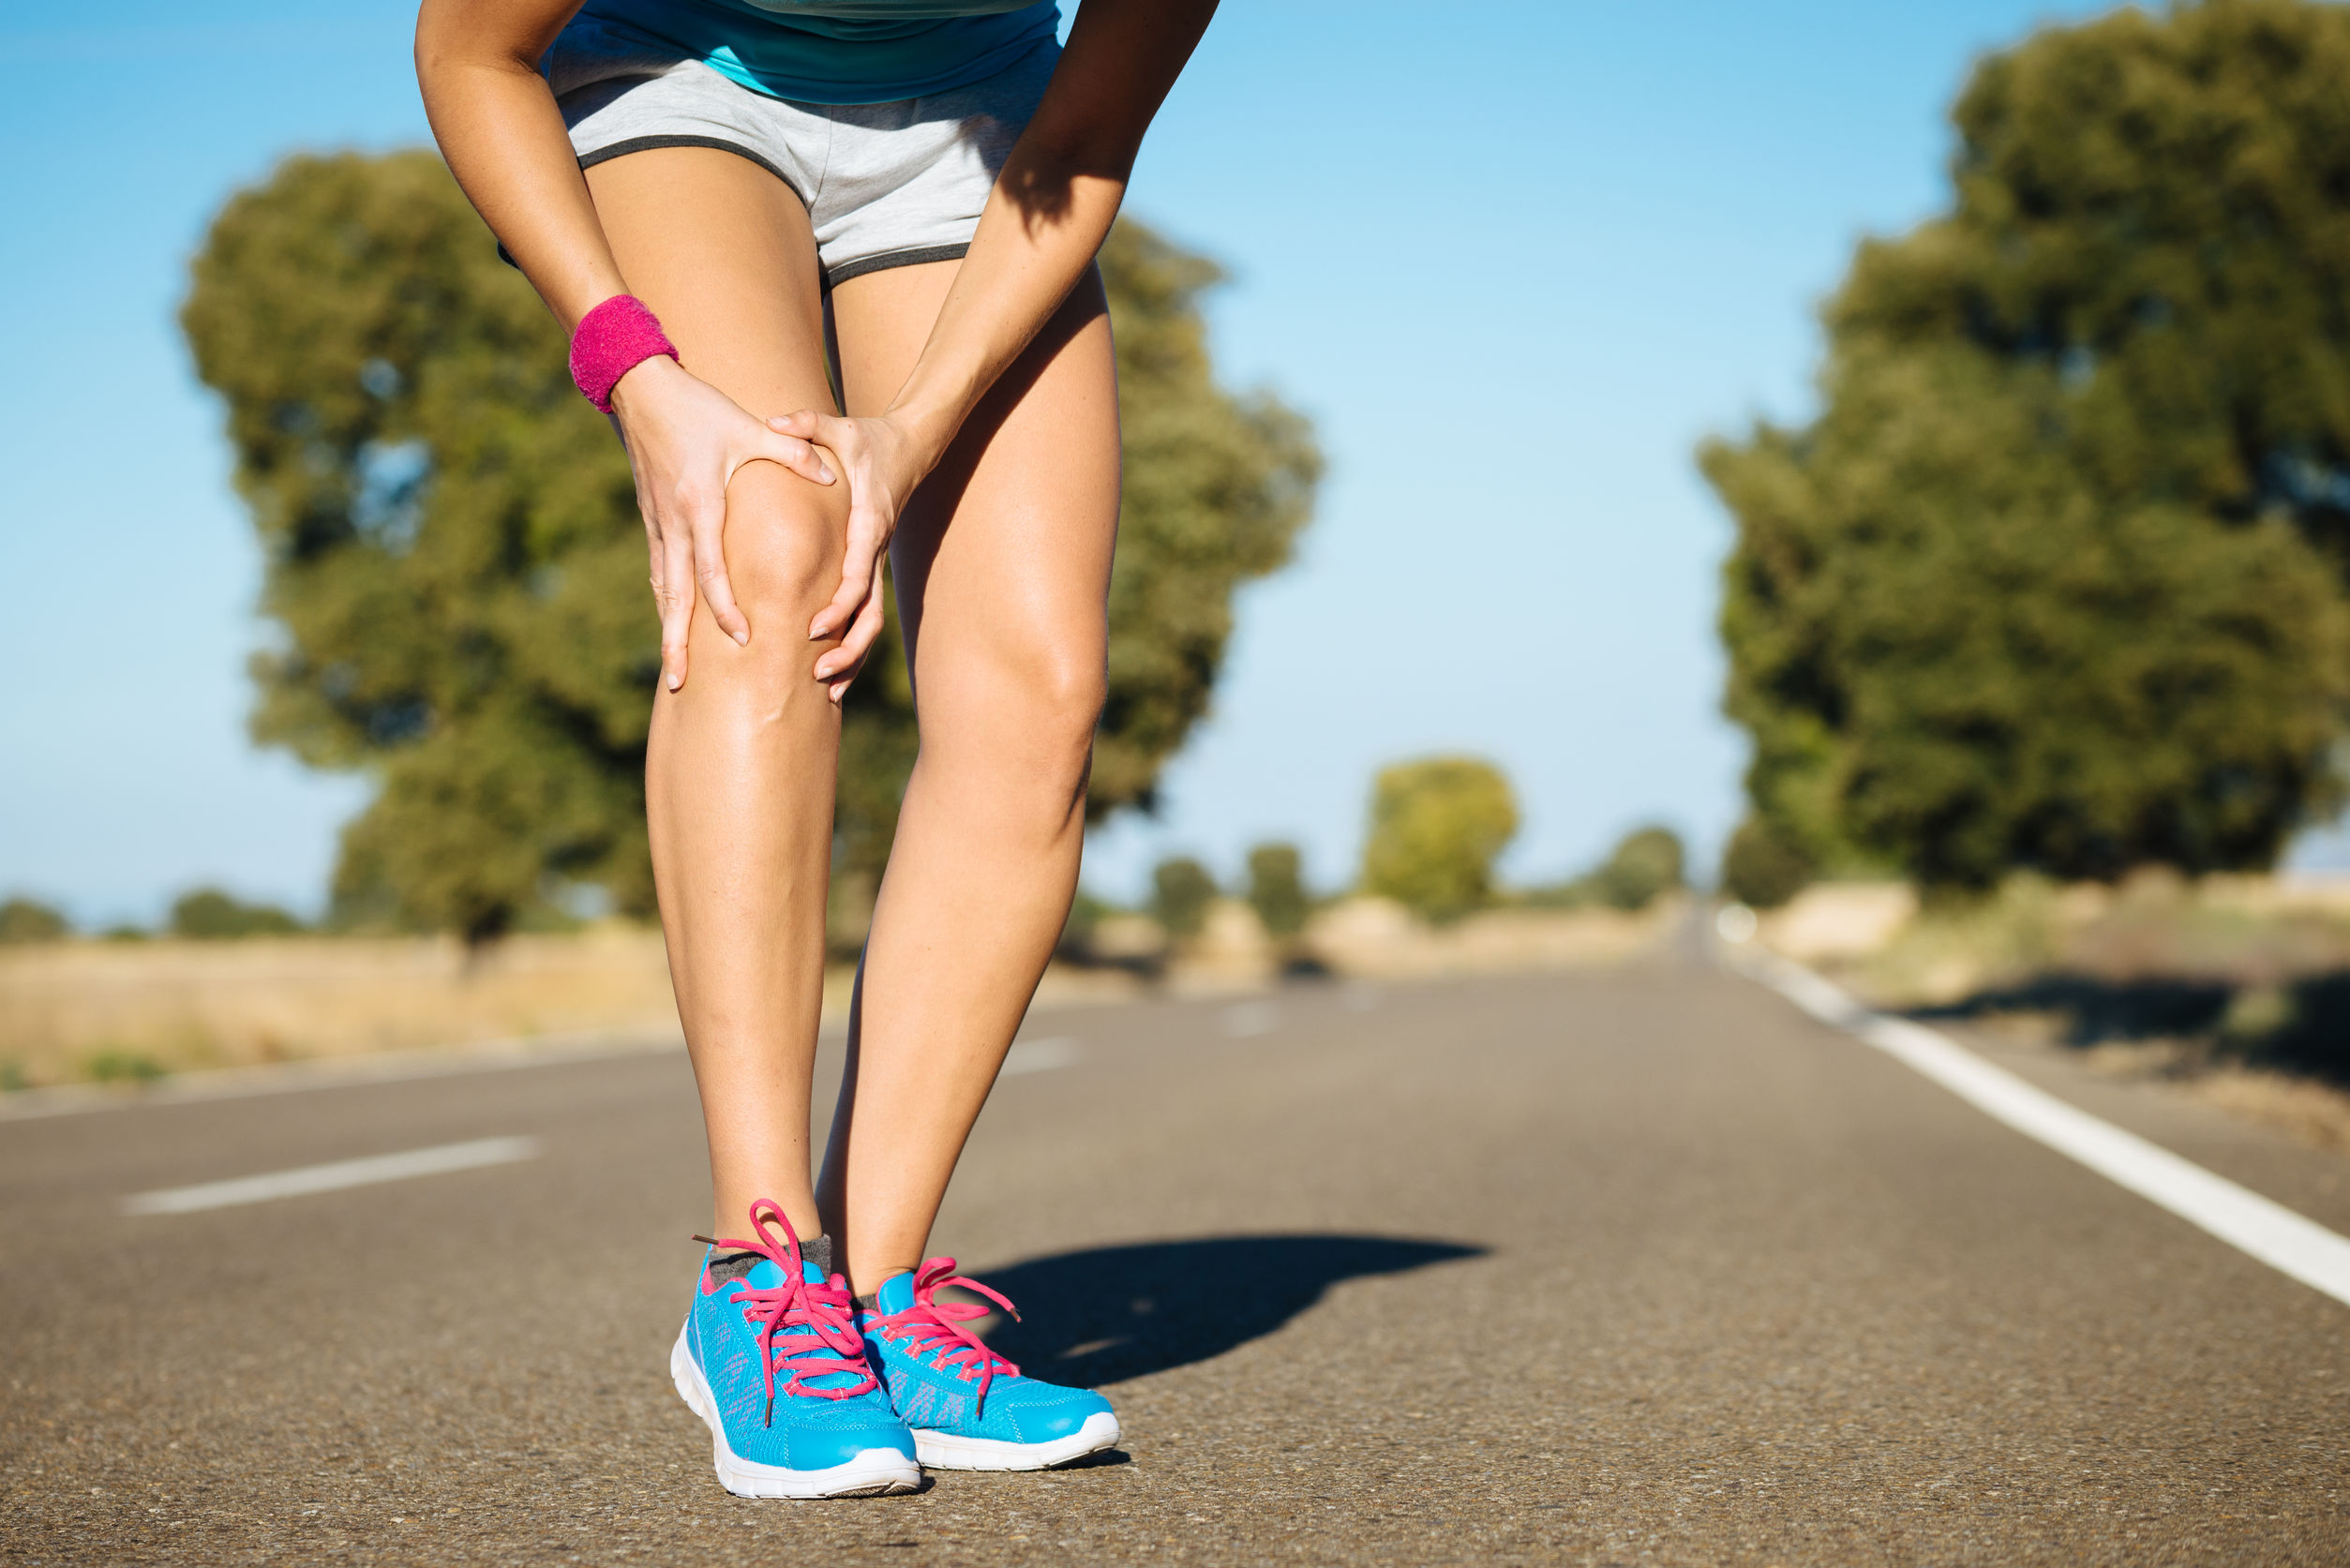 25965472 - female runner knee injury and pain.